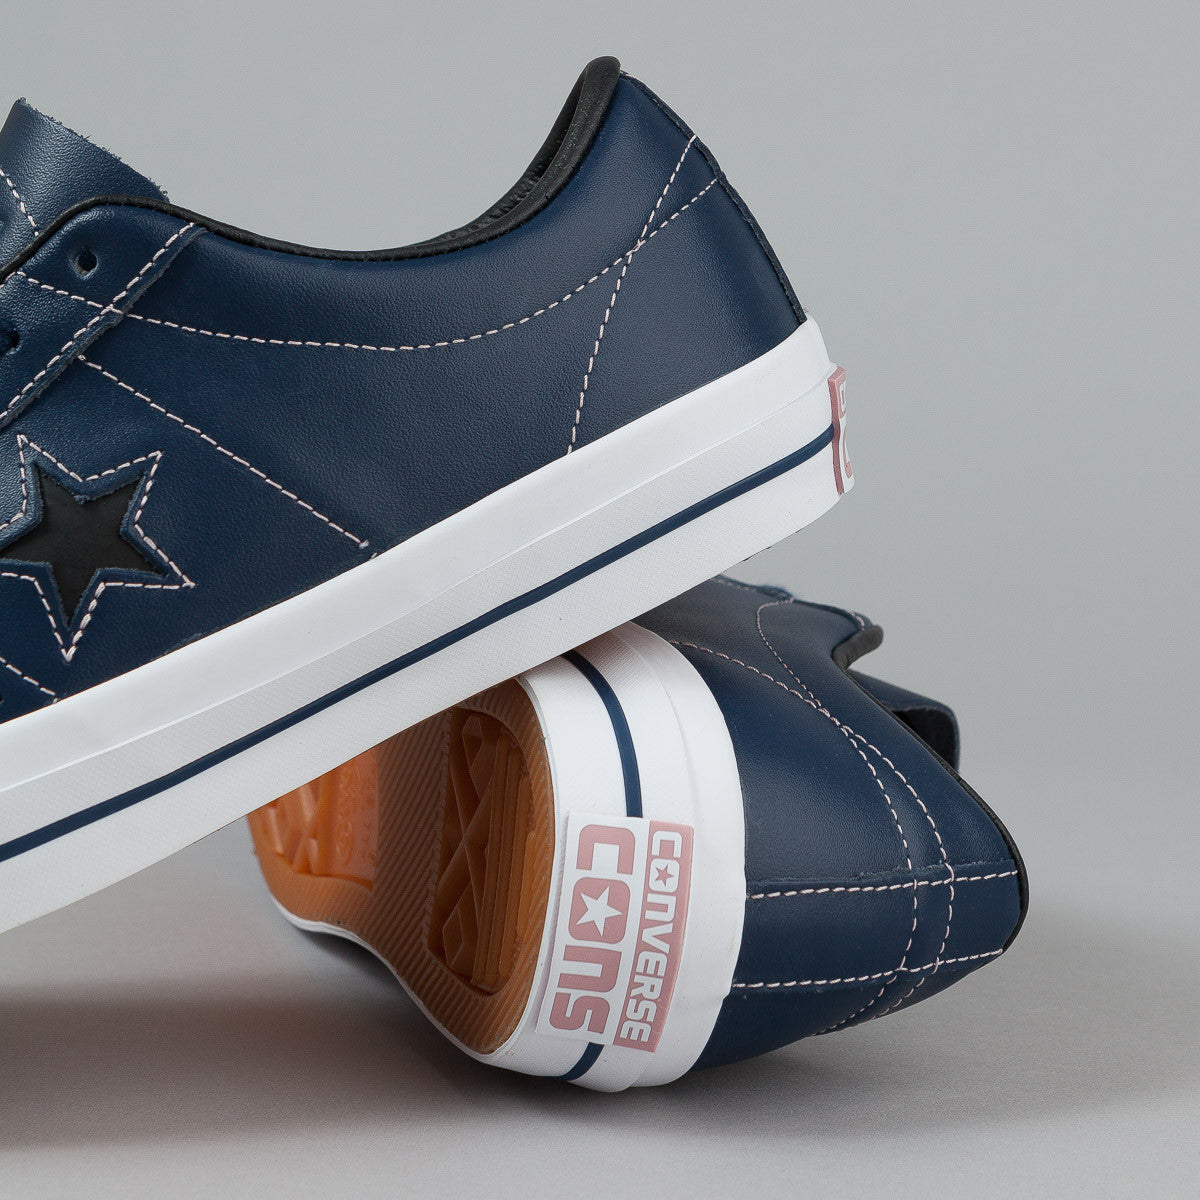 Converse One Star Skate Pro Ox Shoes - Nighttime Navy / Pink Freeze / White